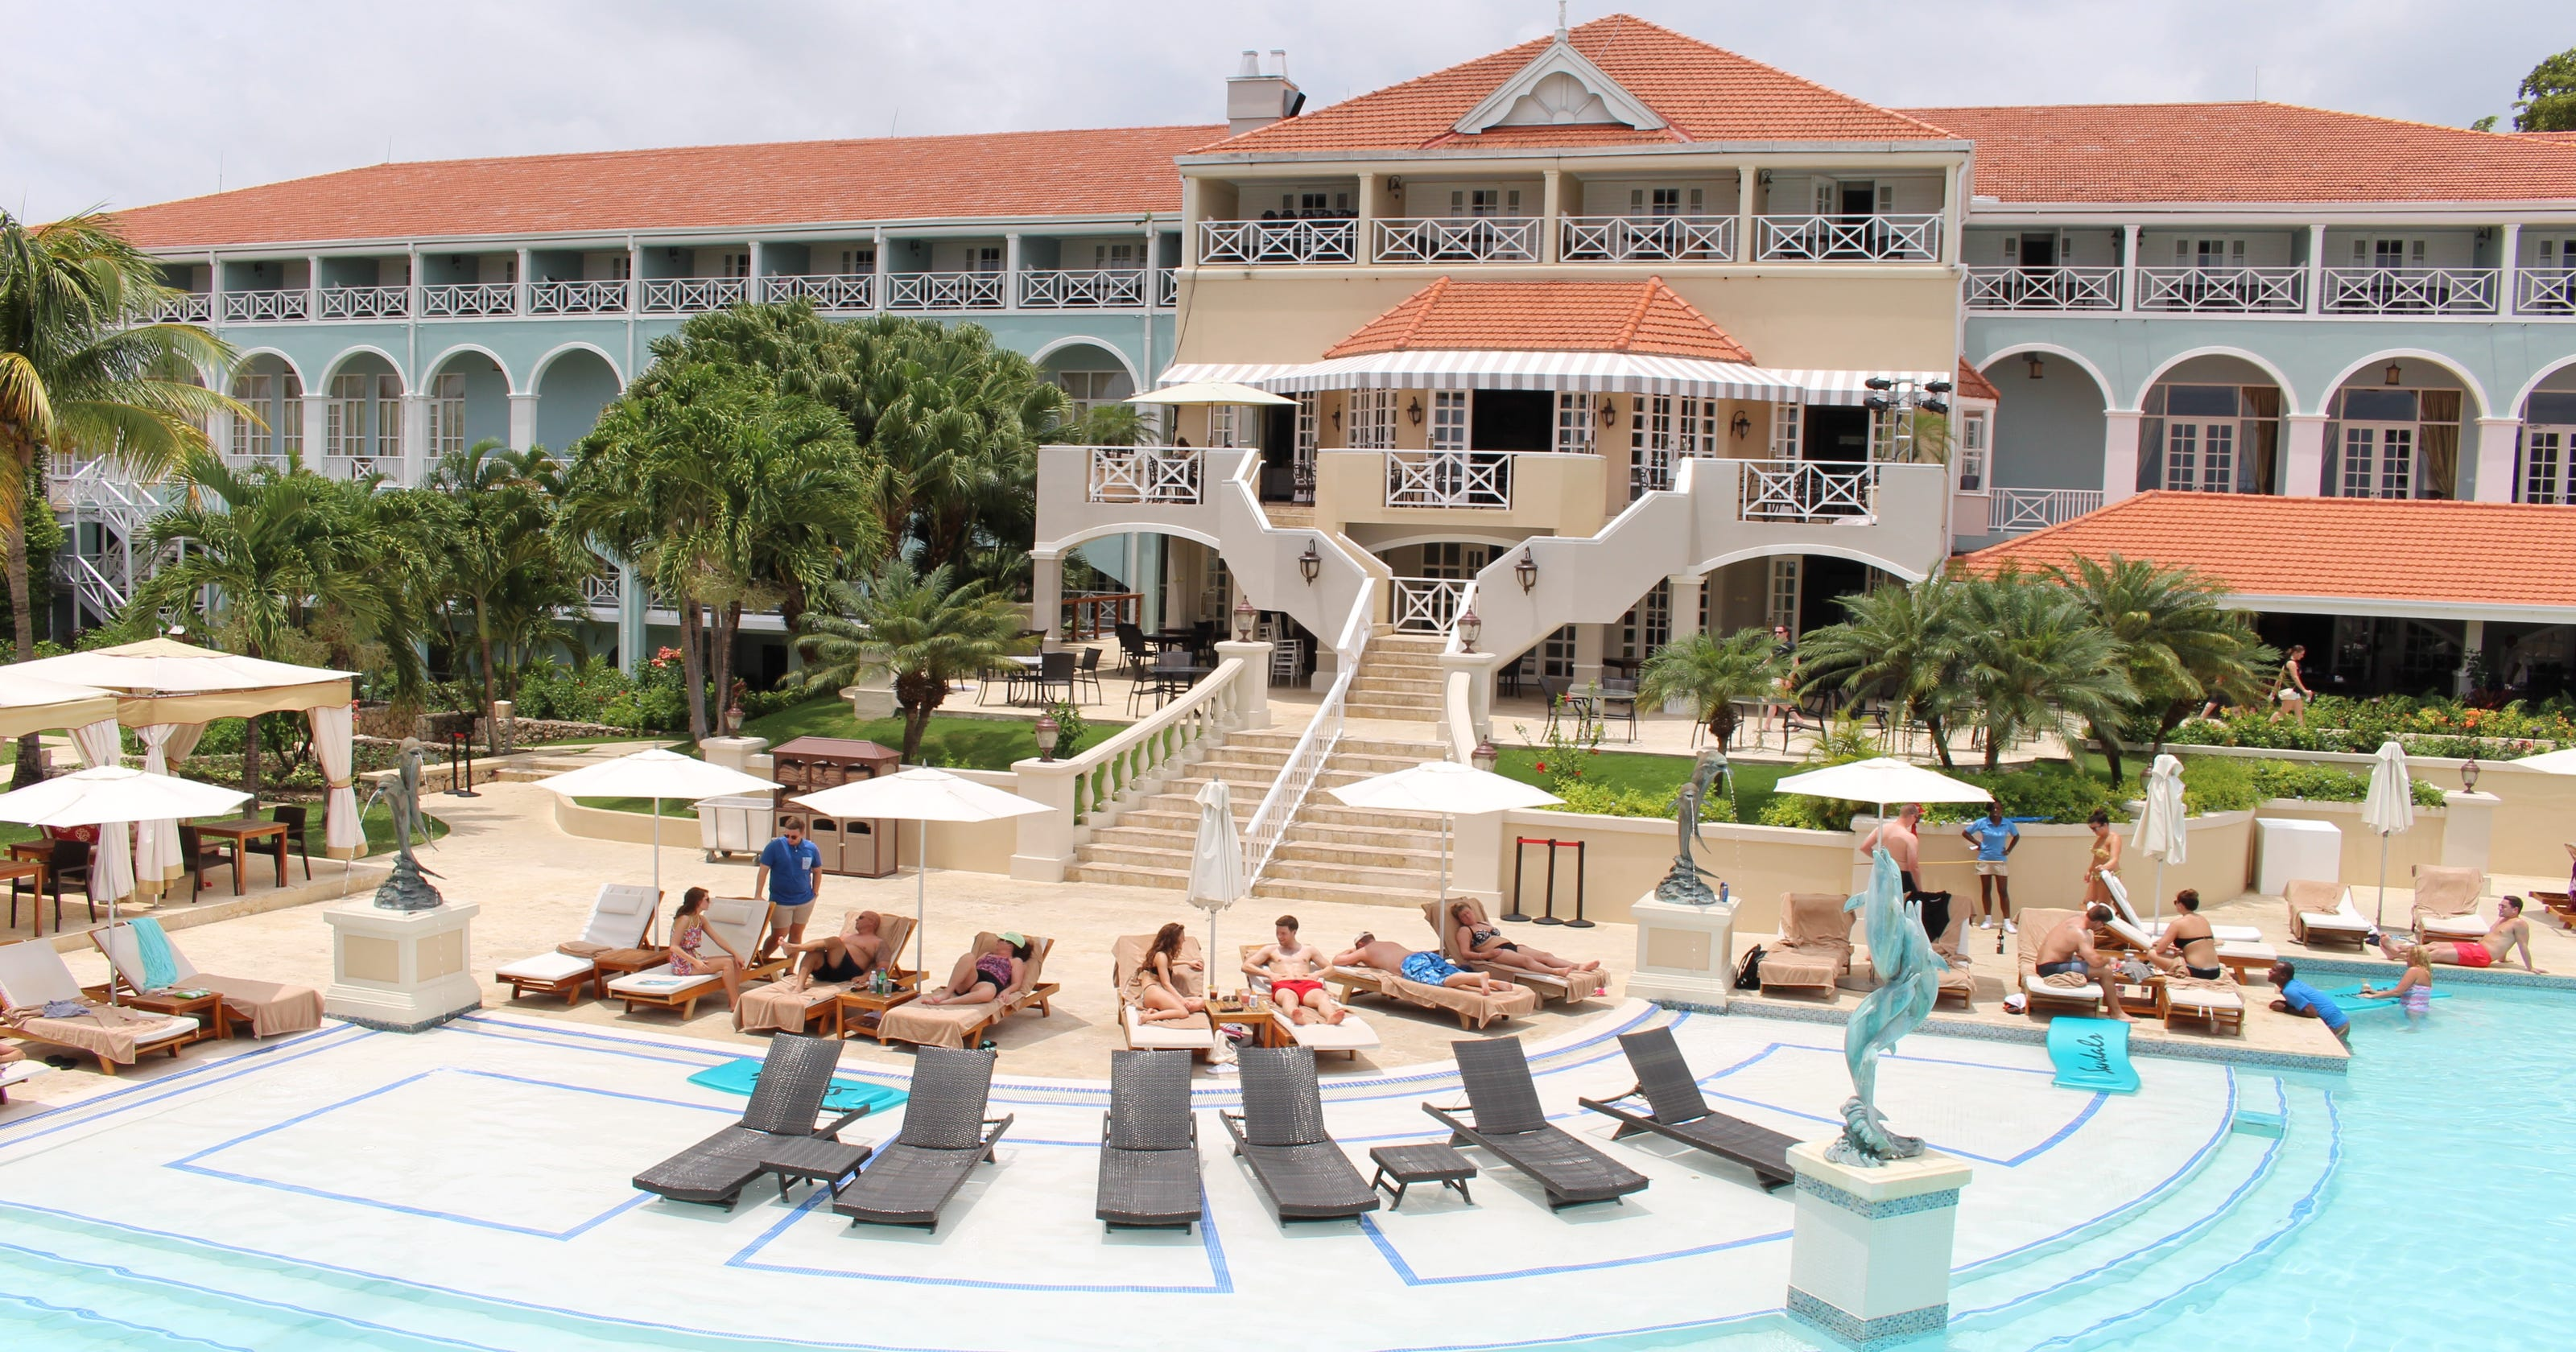 fec9715cbf7e Photo Tour  Sandals  new all-inclusive couples resort in Ocho Rios